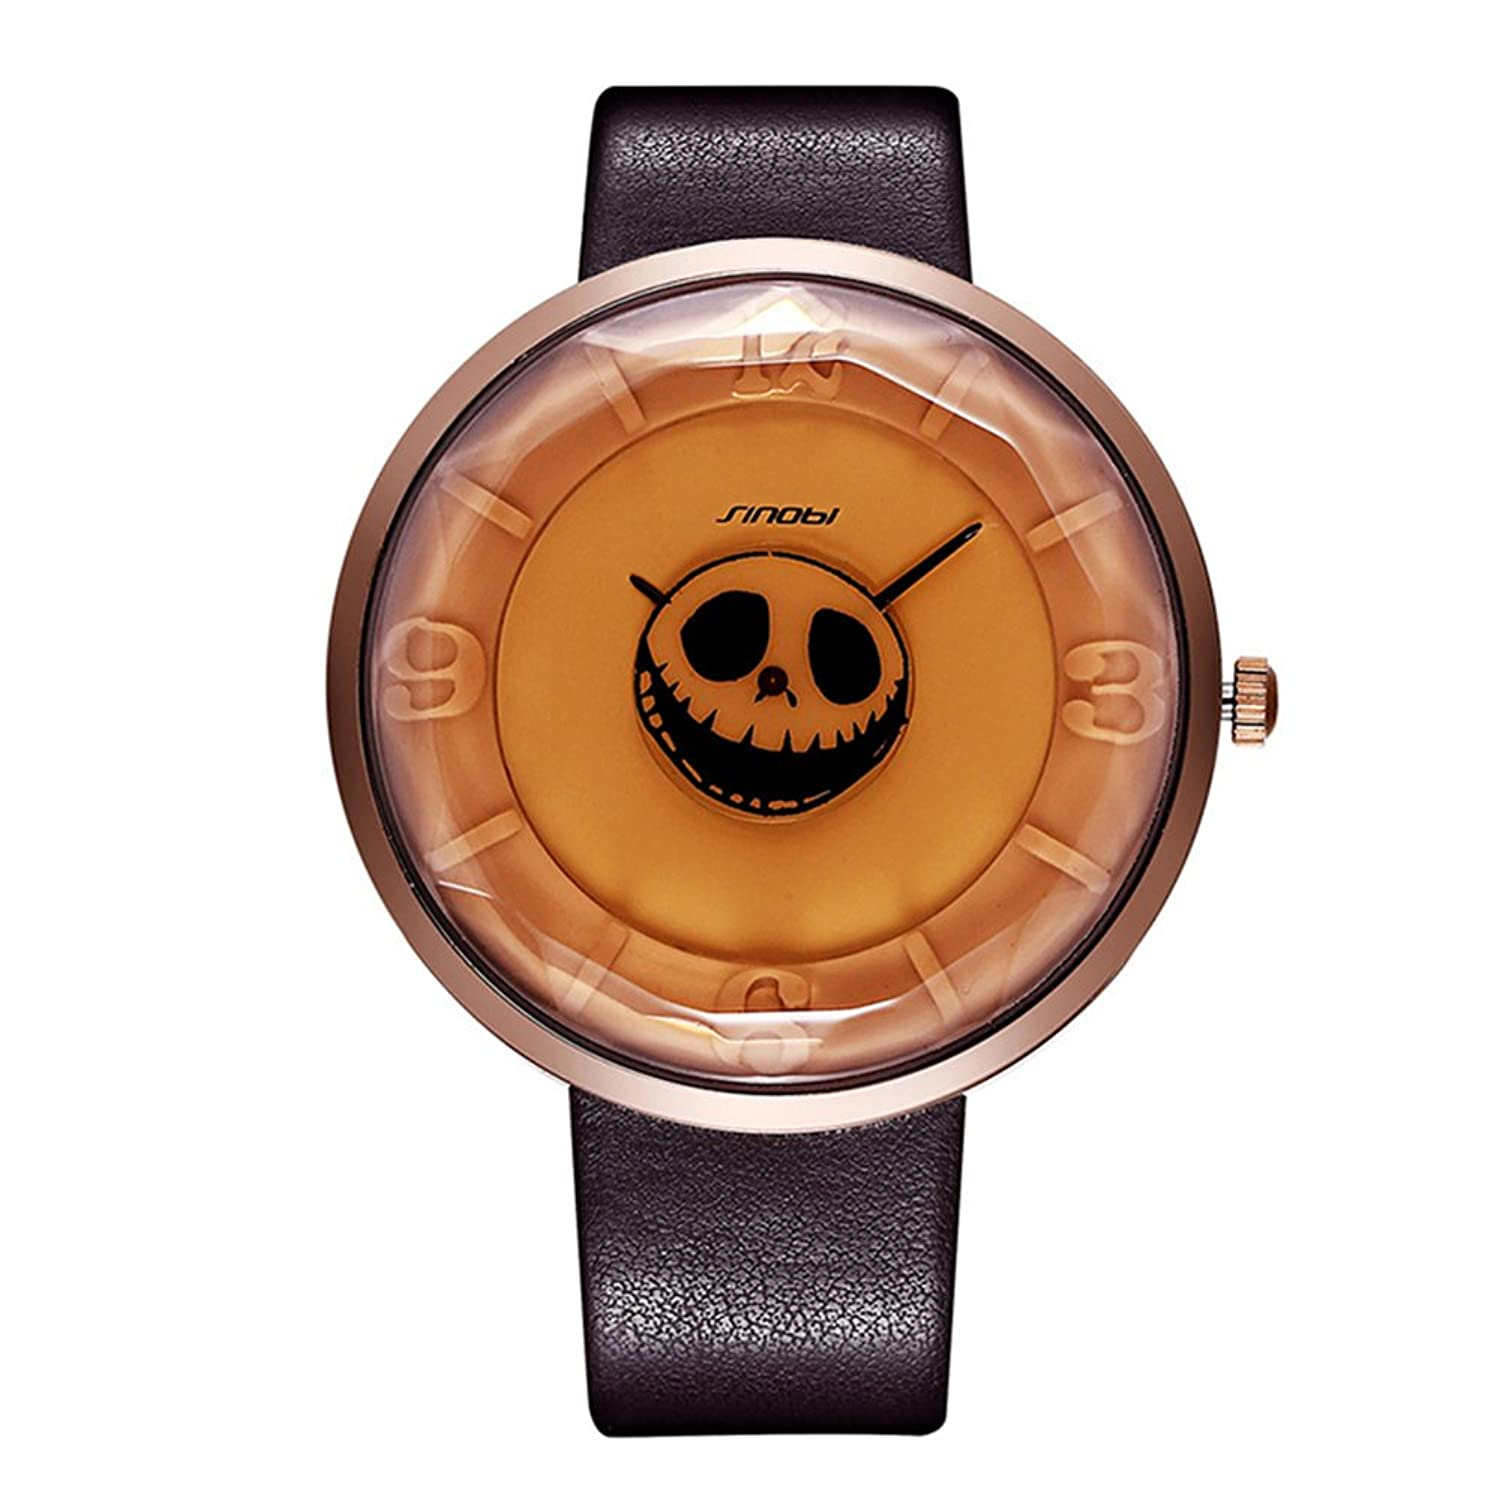 Amazon.com: Sheli Designer Skull Women Hippies Watch Oversized Face Gift for Festival: Watches